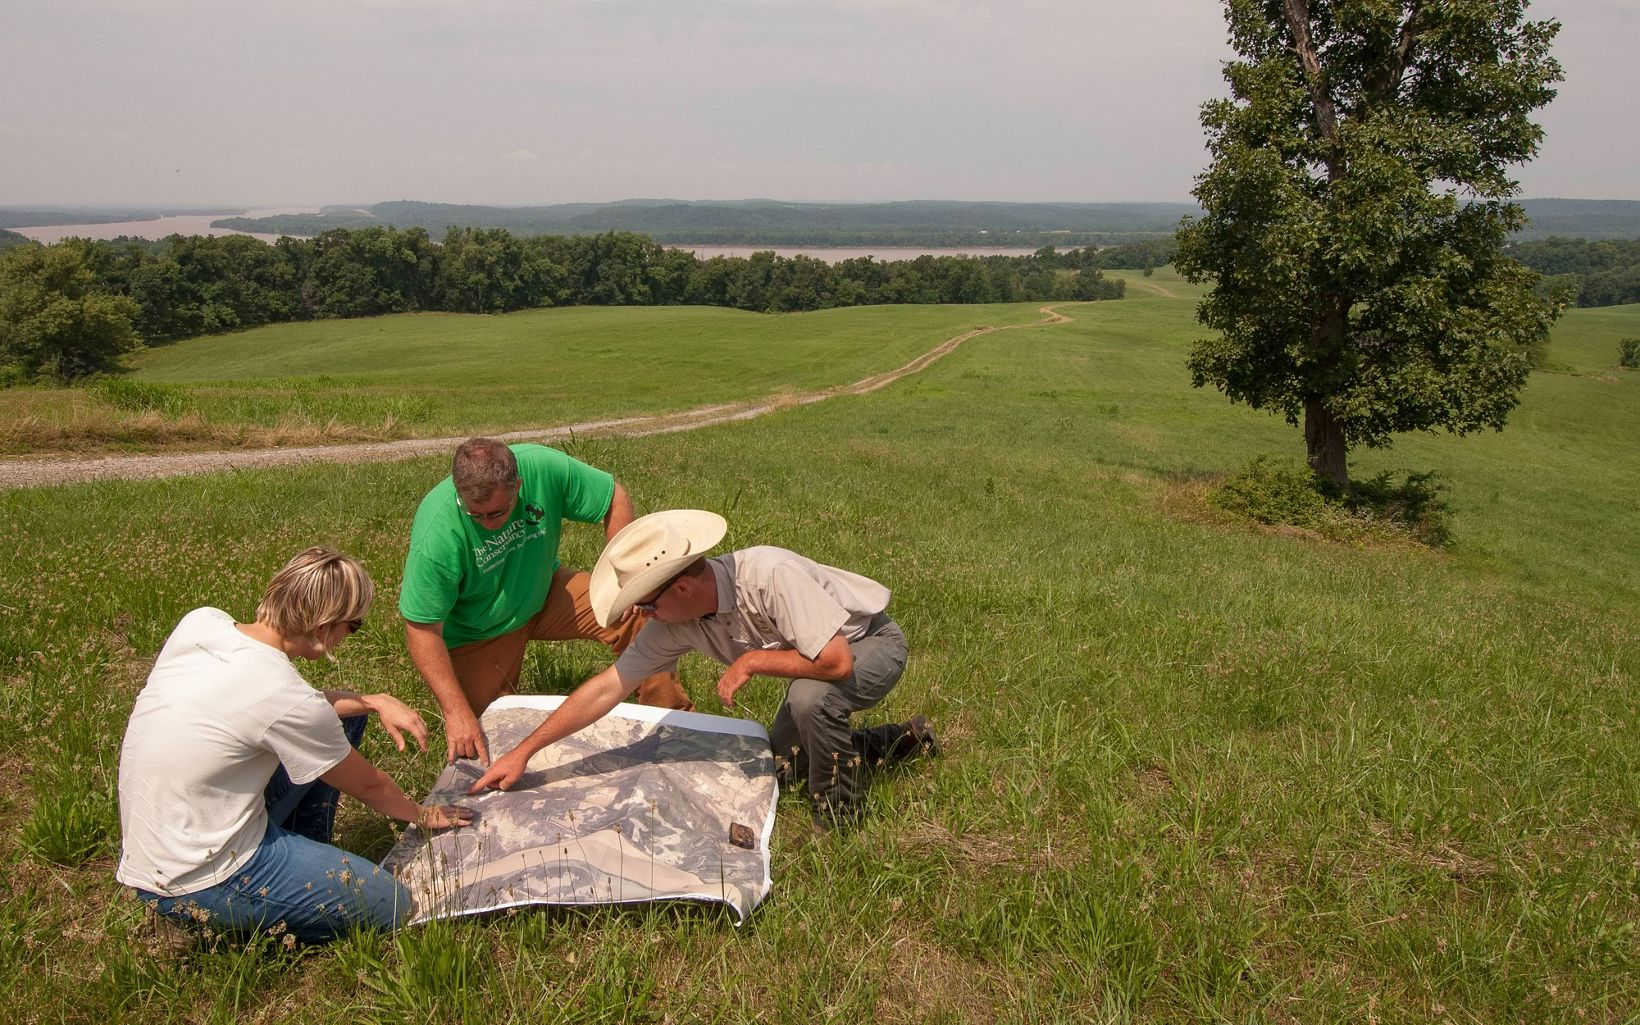 Maps guide discussion and decision making at Kentucky's Big River Corridor project.